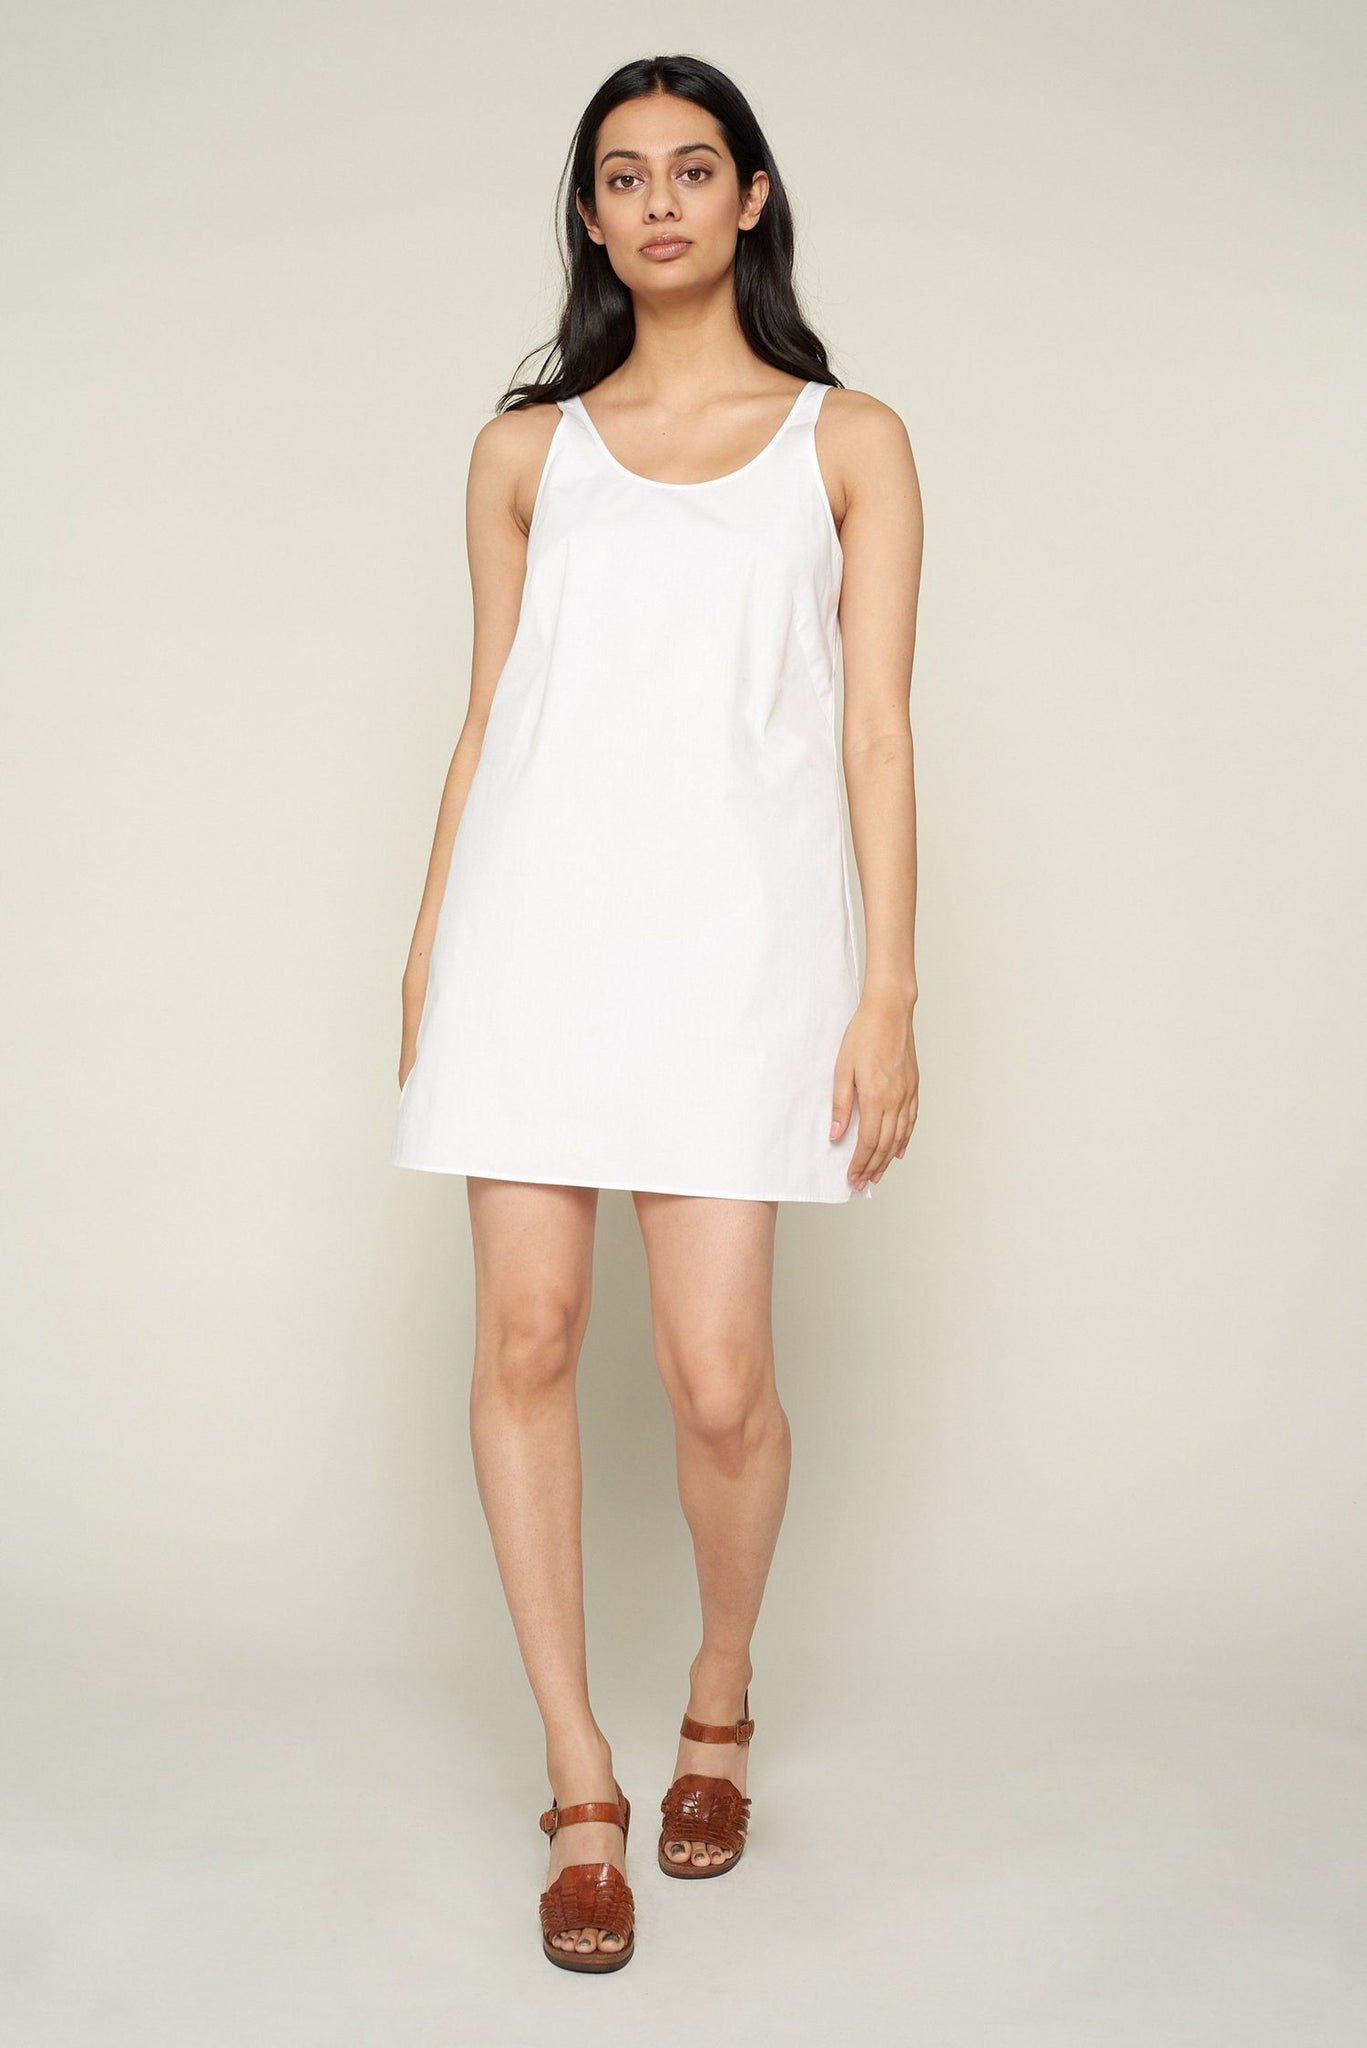 Organic cotton dress from Grammar NYC